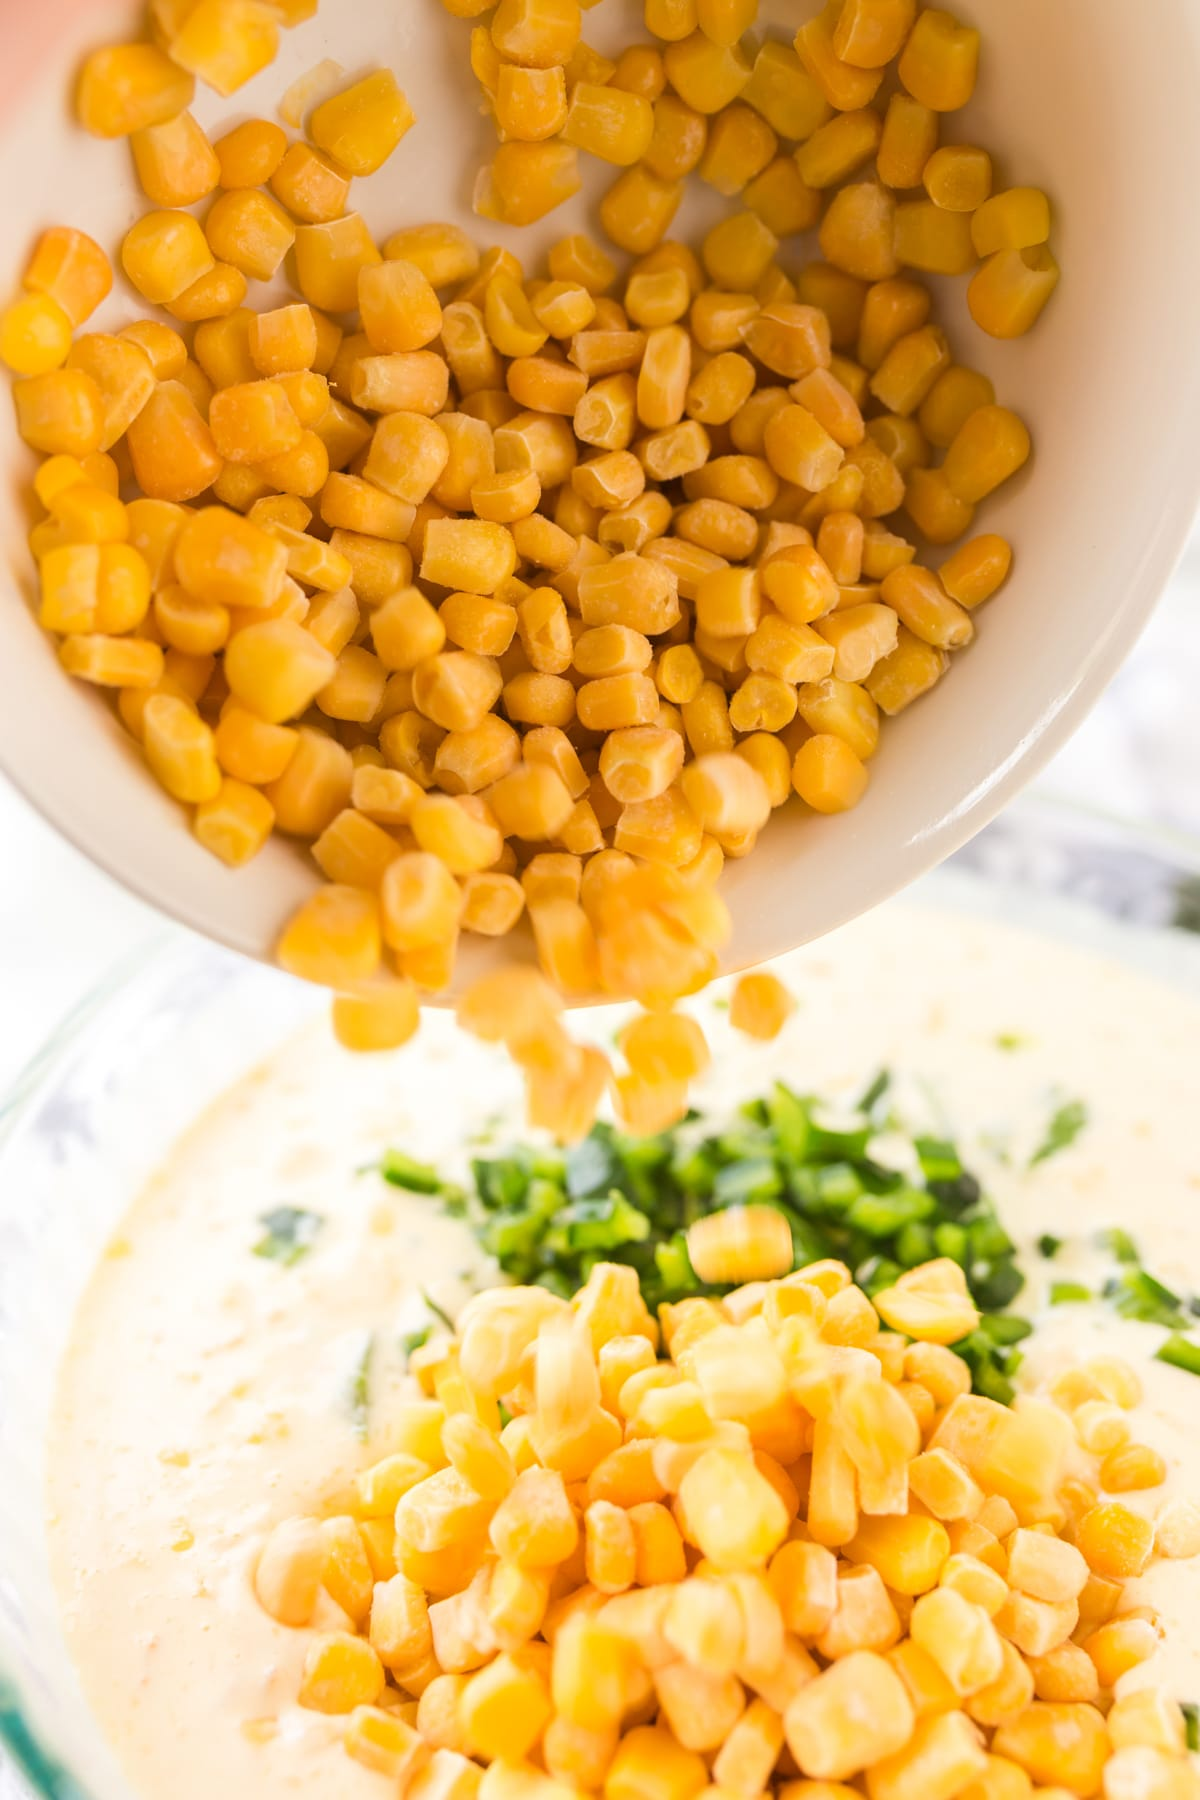 Making Famous Corn Pudding Recipe #ASpicyPerspective #corn #pudding #stuffing #holidays #thanksgiving